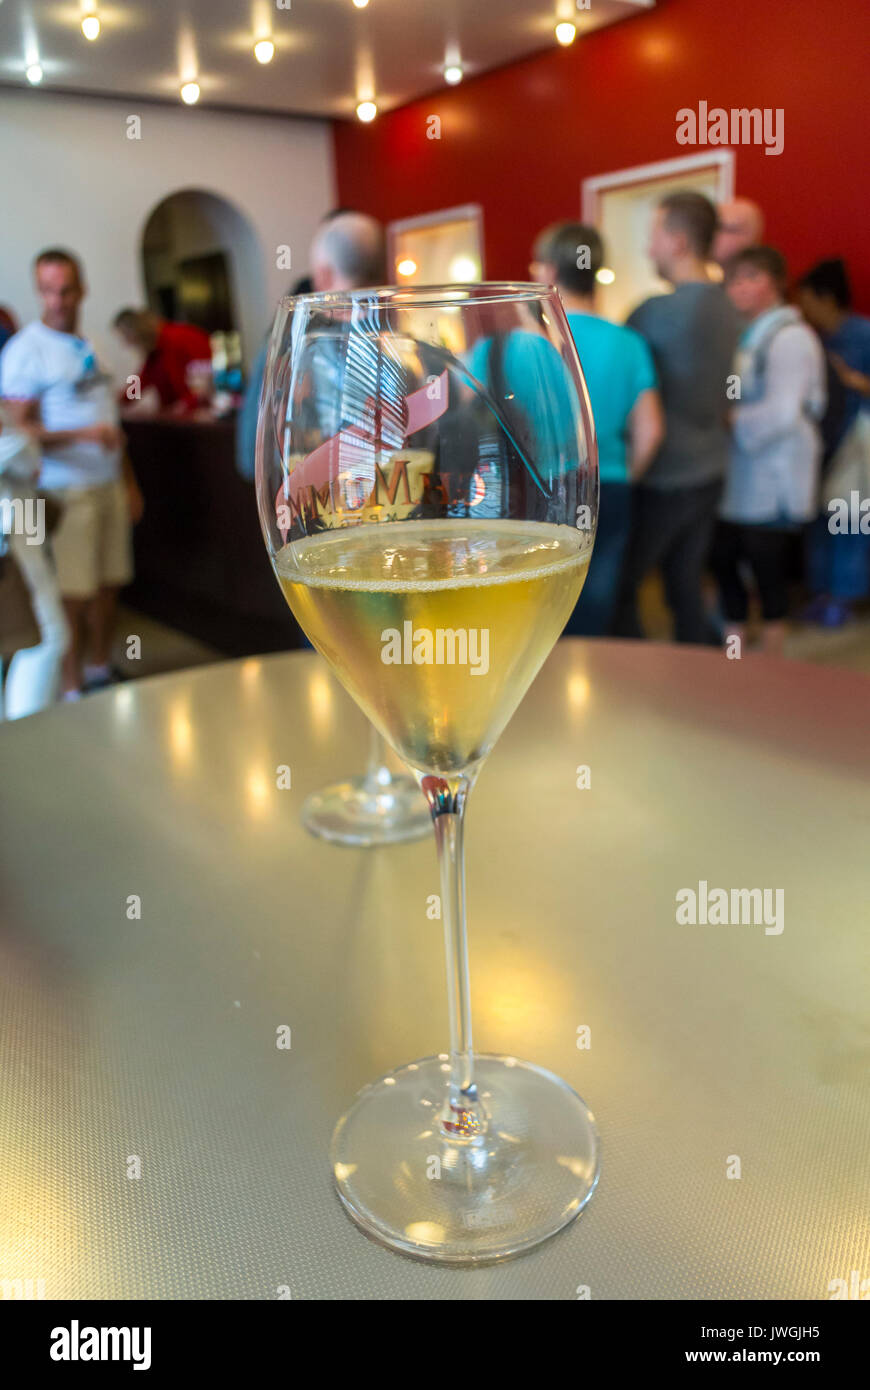 Reims, France, Tourists Visiting Mumm Champagne Cave, Glass of Champagne on Bar Detail - Stock Image